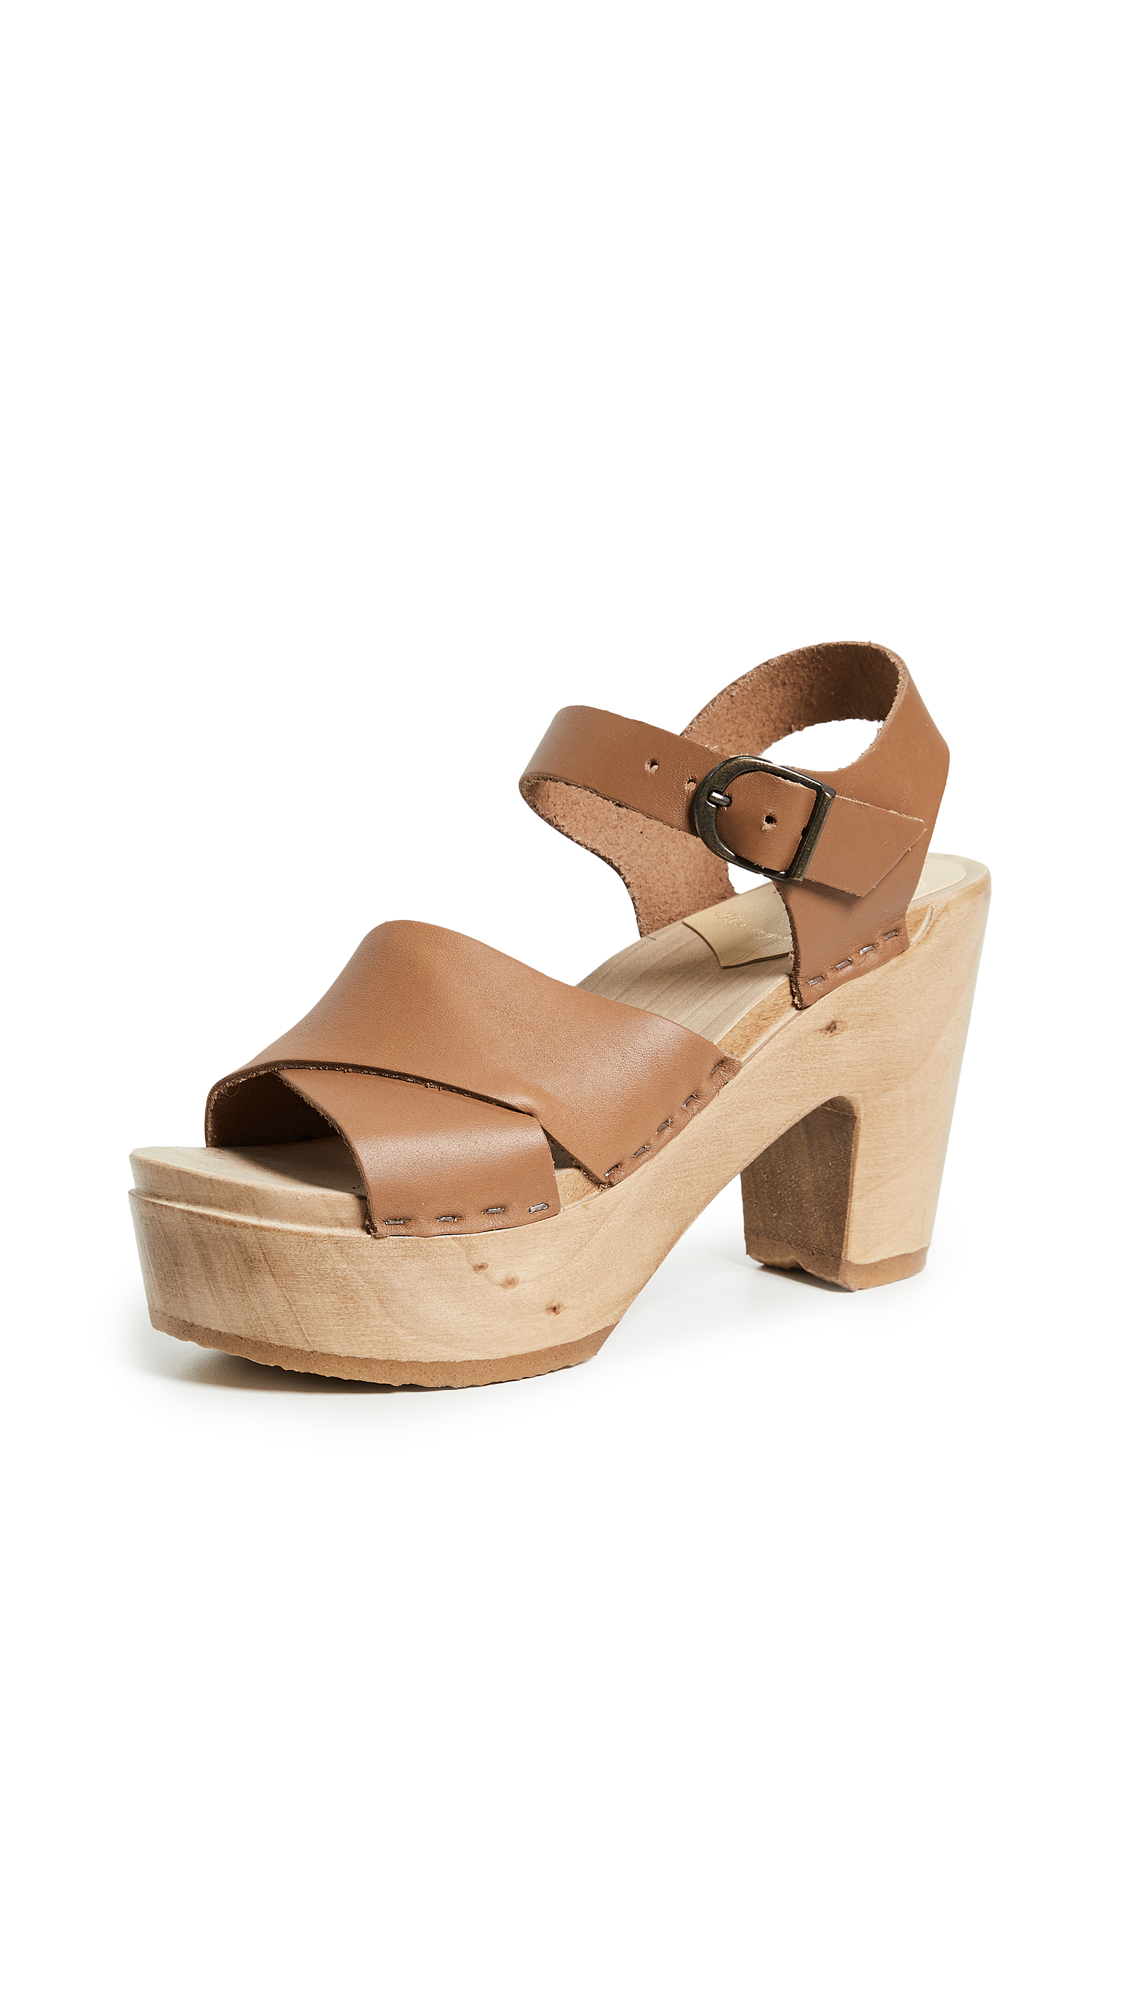 No.6 Coco Platform Sandals with Crisscross Straps - Palomino